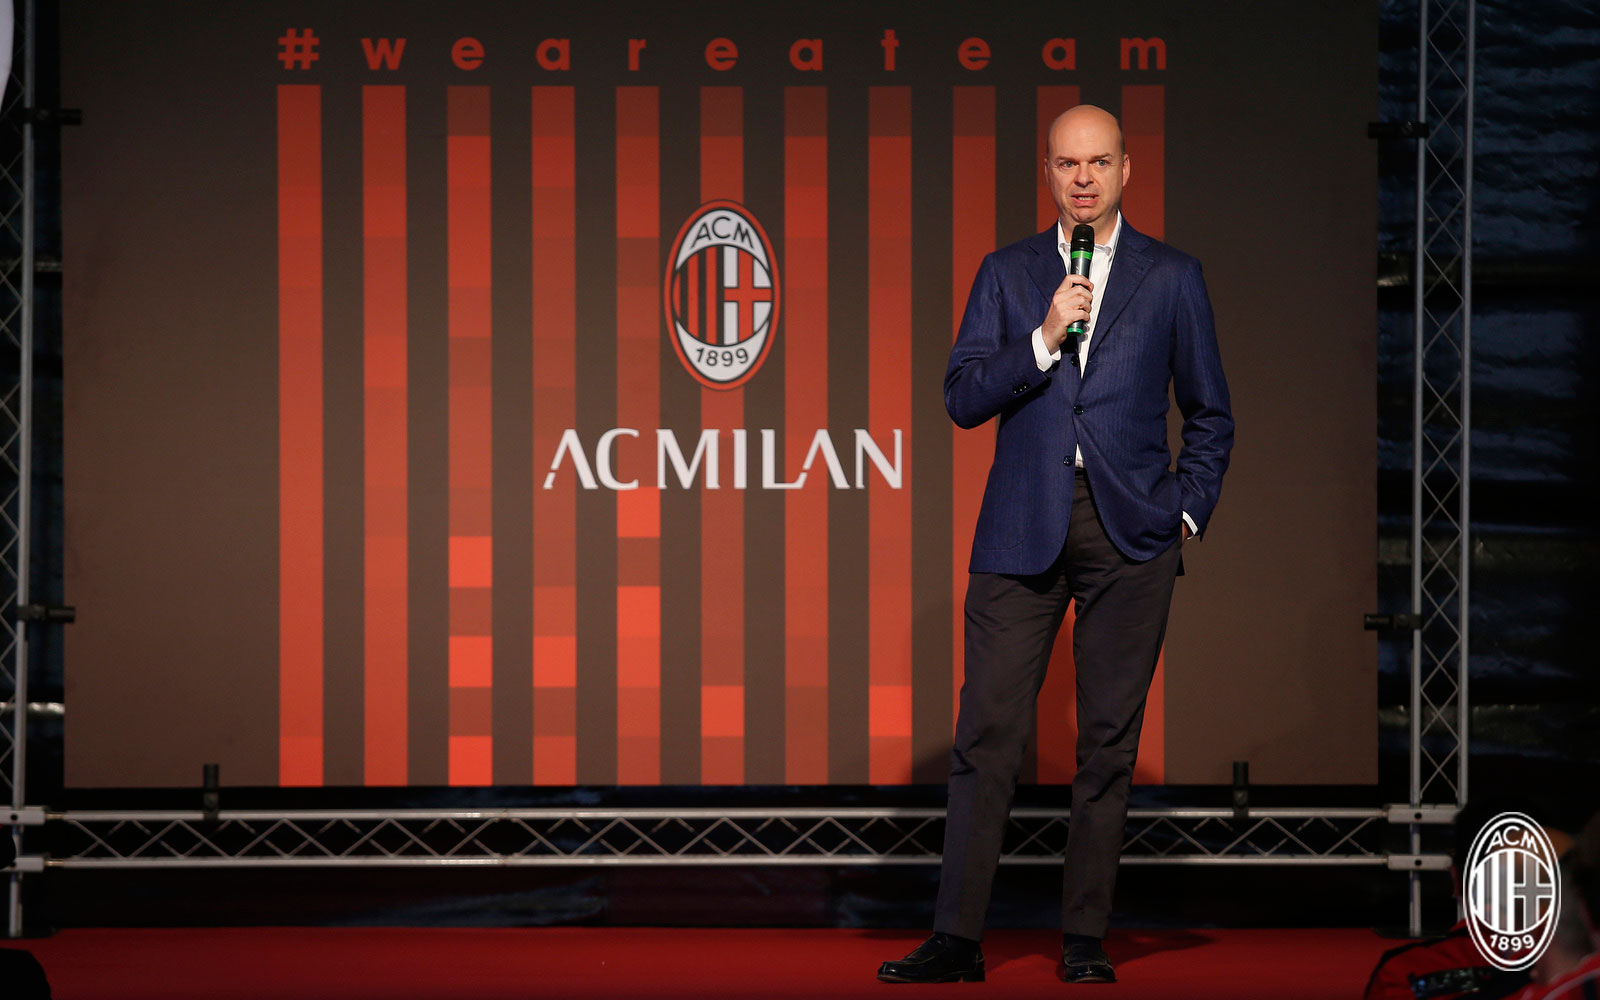 Marco Fassone during a Milan team building event at Milanello on October 9, 2017. (@acmilan.com)